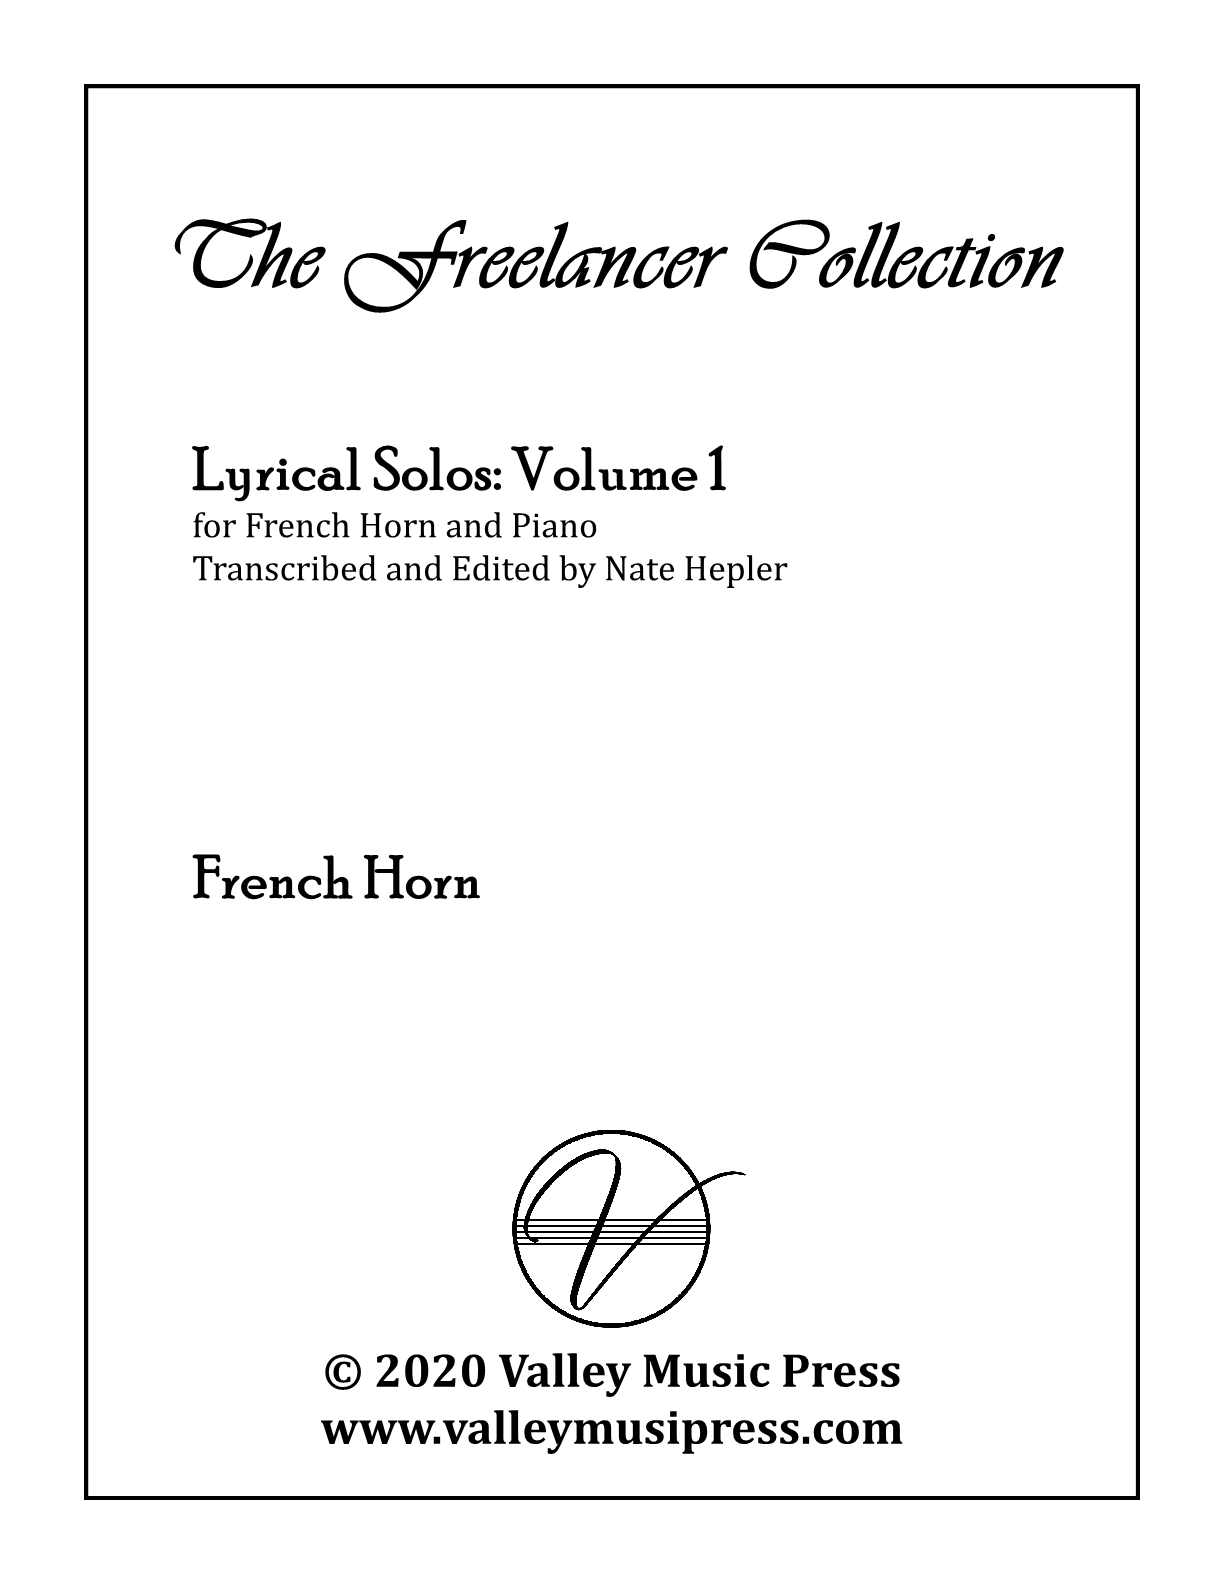 Hepler - Freelancer Collection Lyrical Solos Vol 1 (Hrn & Piano)